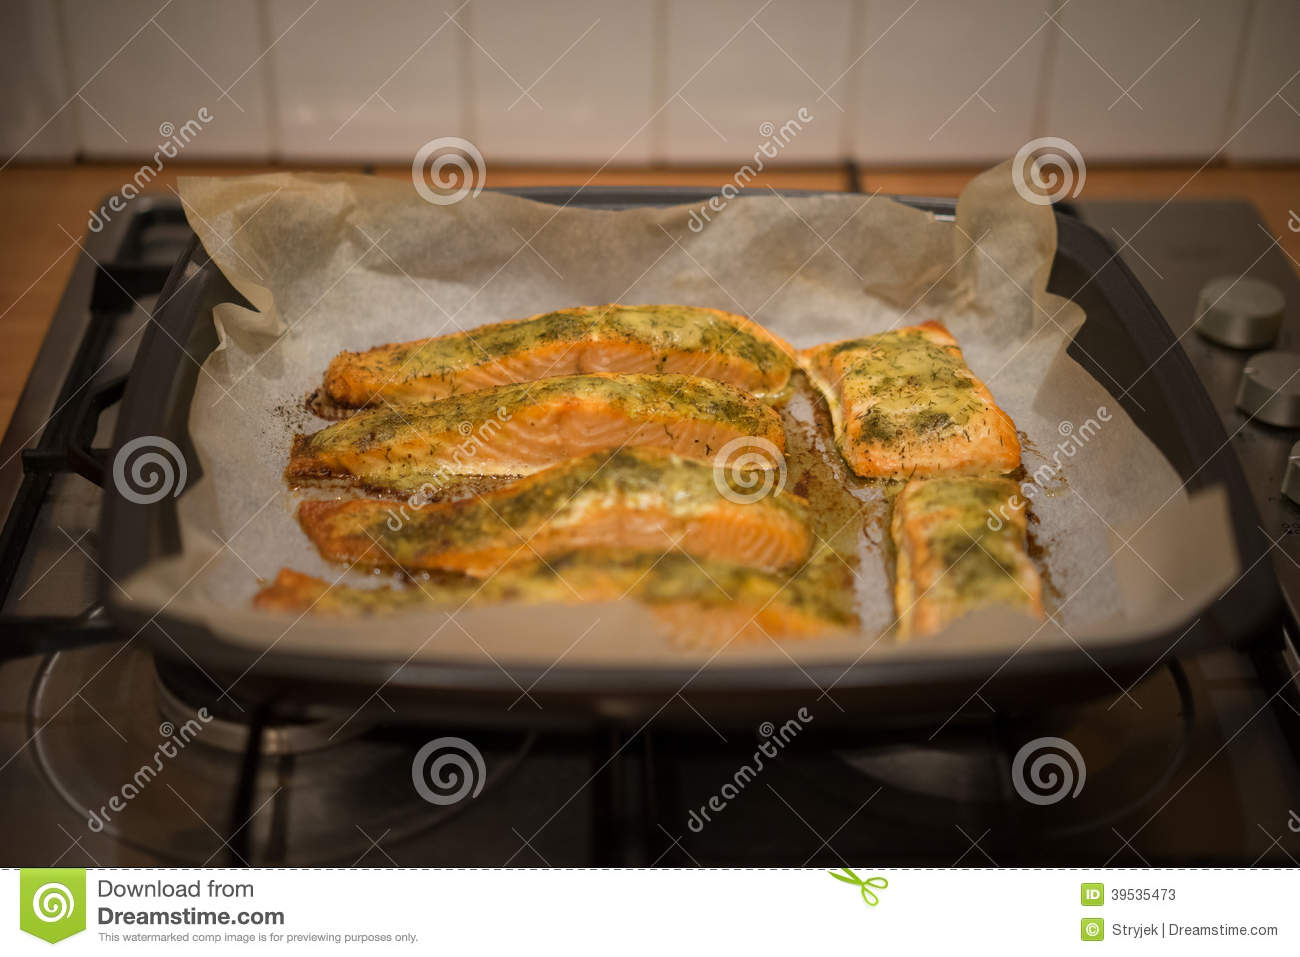 Preparing baked fish in a roasting pan stock photo image for Fish fillet in oven